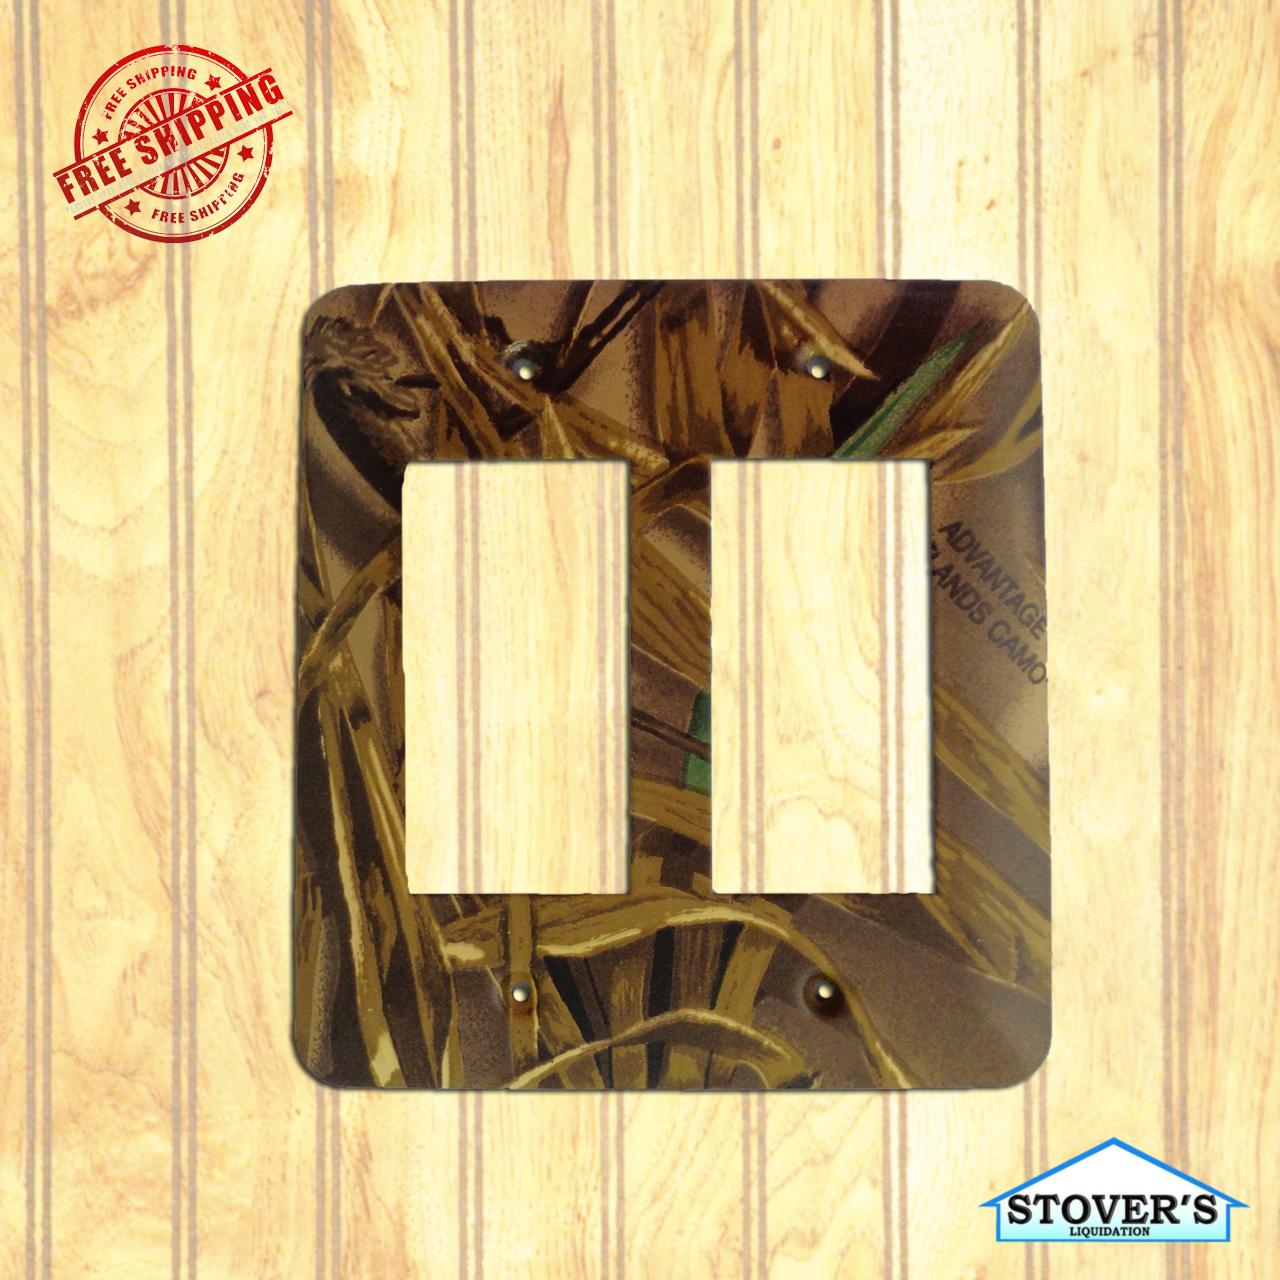 63122-double-rocker-gfci-light-switch-plate-outdoors-camo-advantage-wetlands-stovers-liquidation.jpg